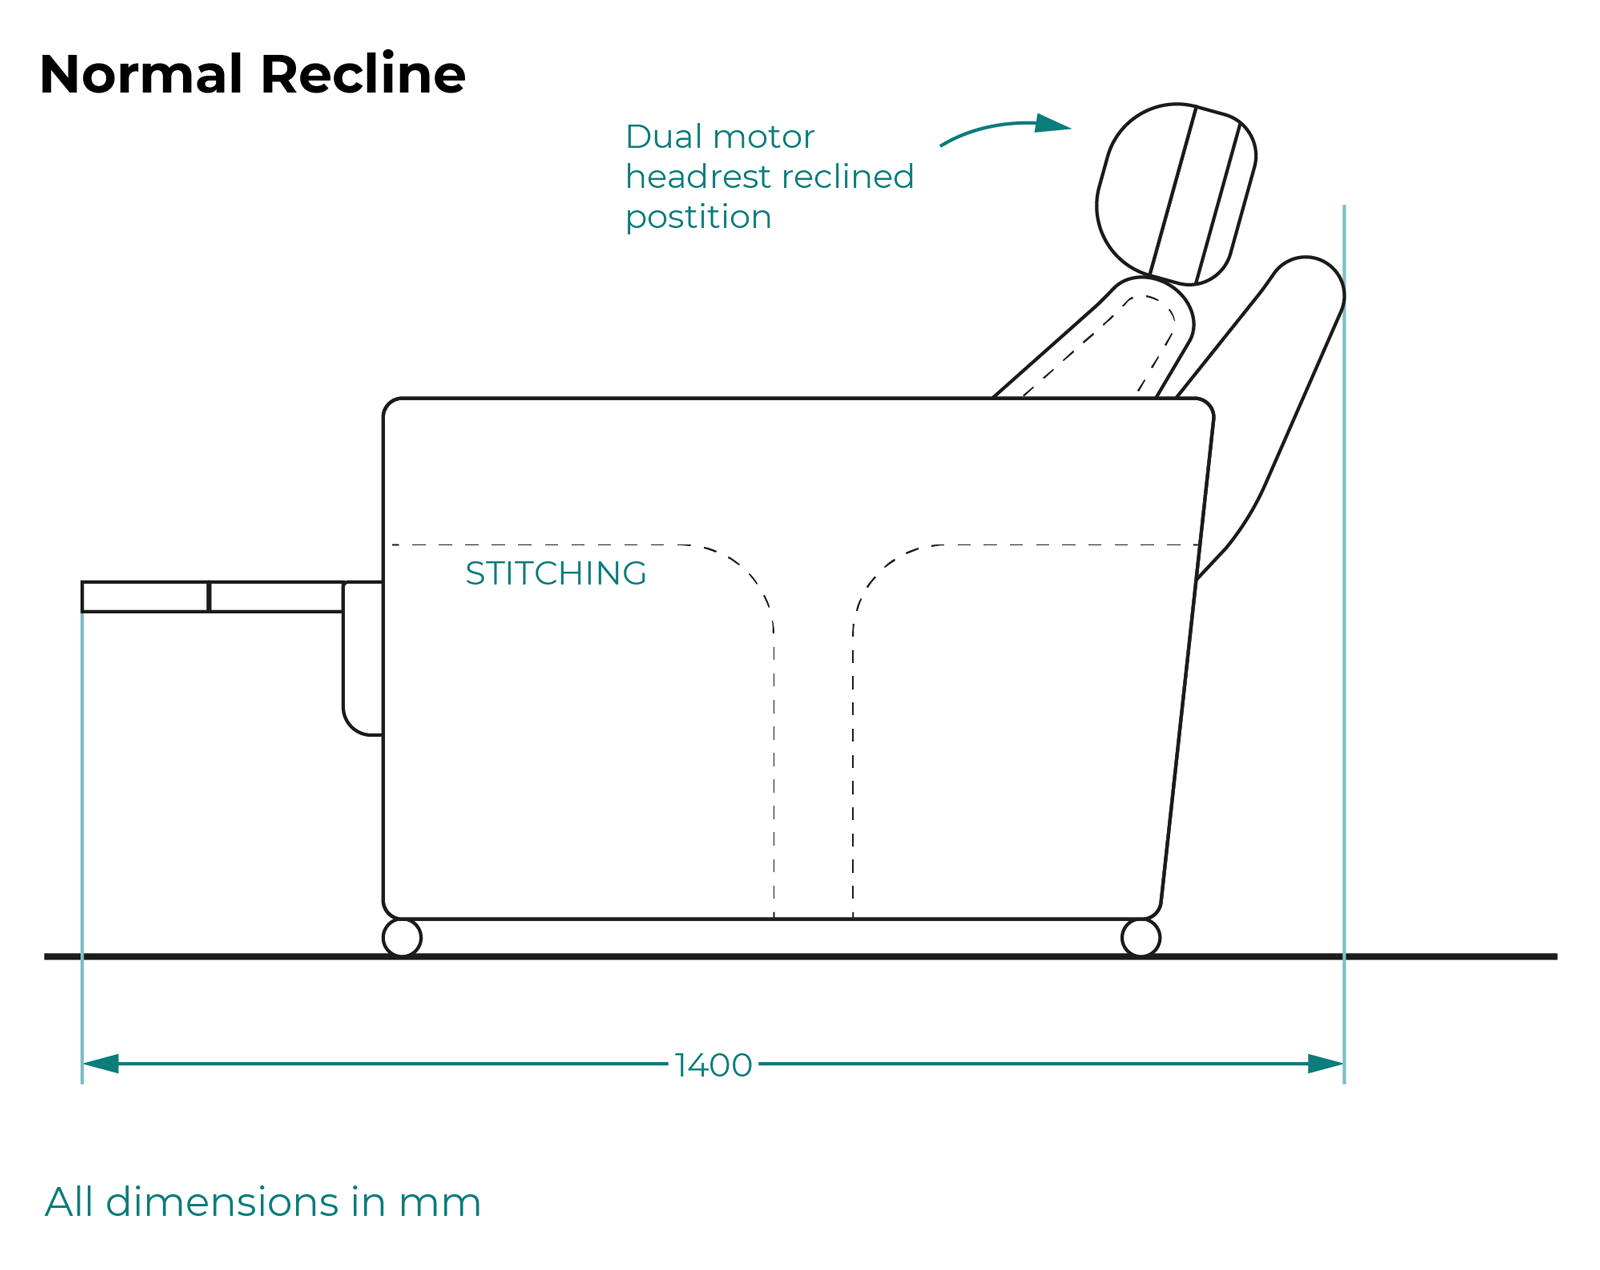 Serenity sideview - normal recline